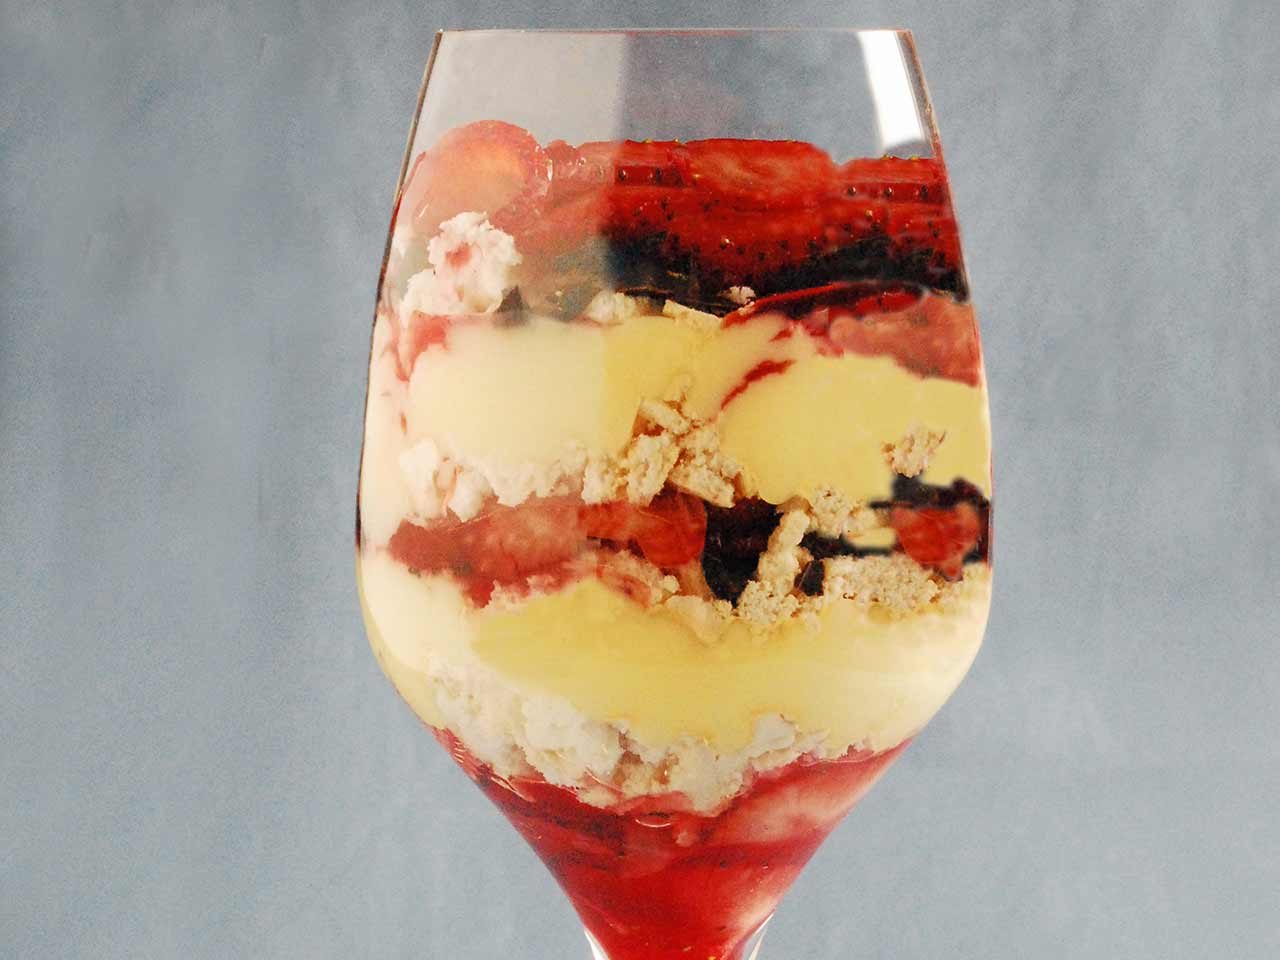 Strawberry and pavlova trifle in a glass